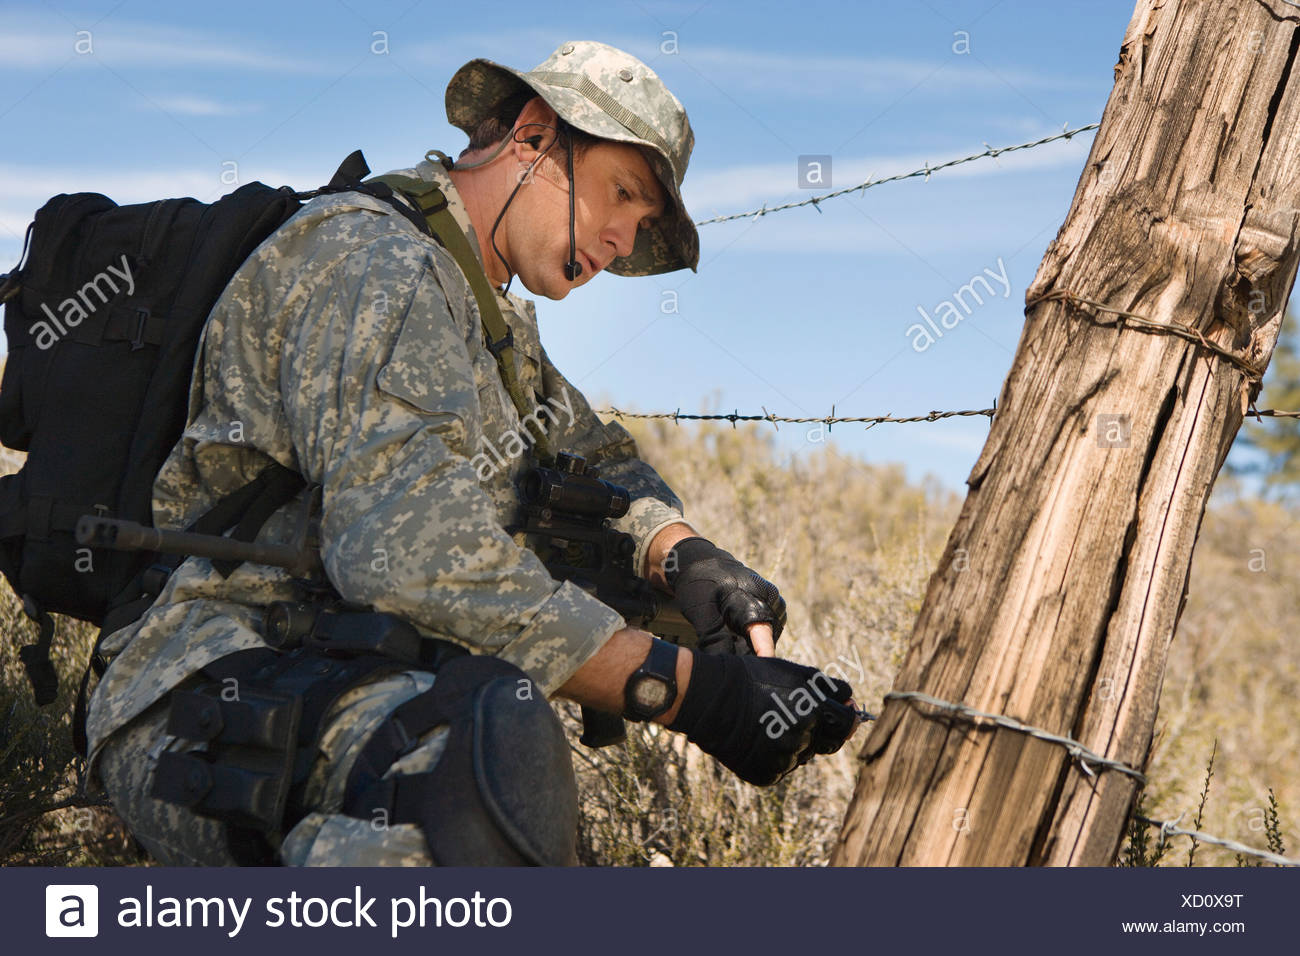 Soldier Wire | Soldier Cutting Barbed Wire Fence Stock Photo 283377076 Alamy